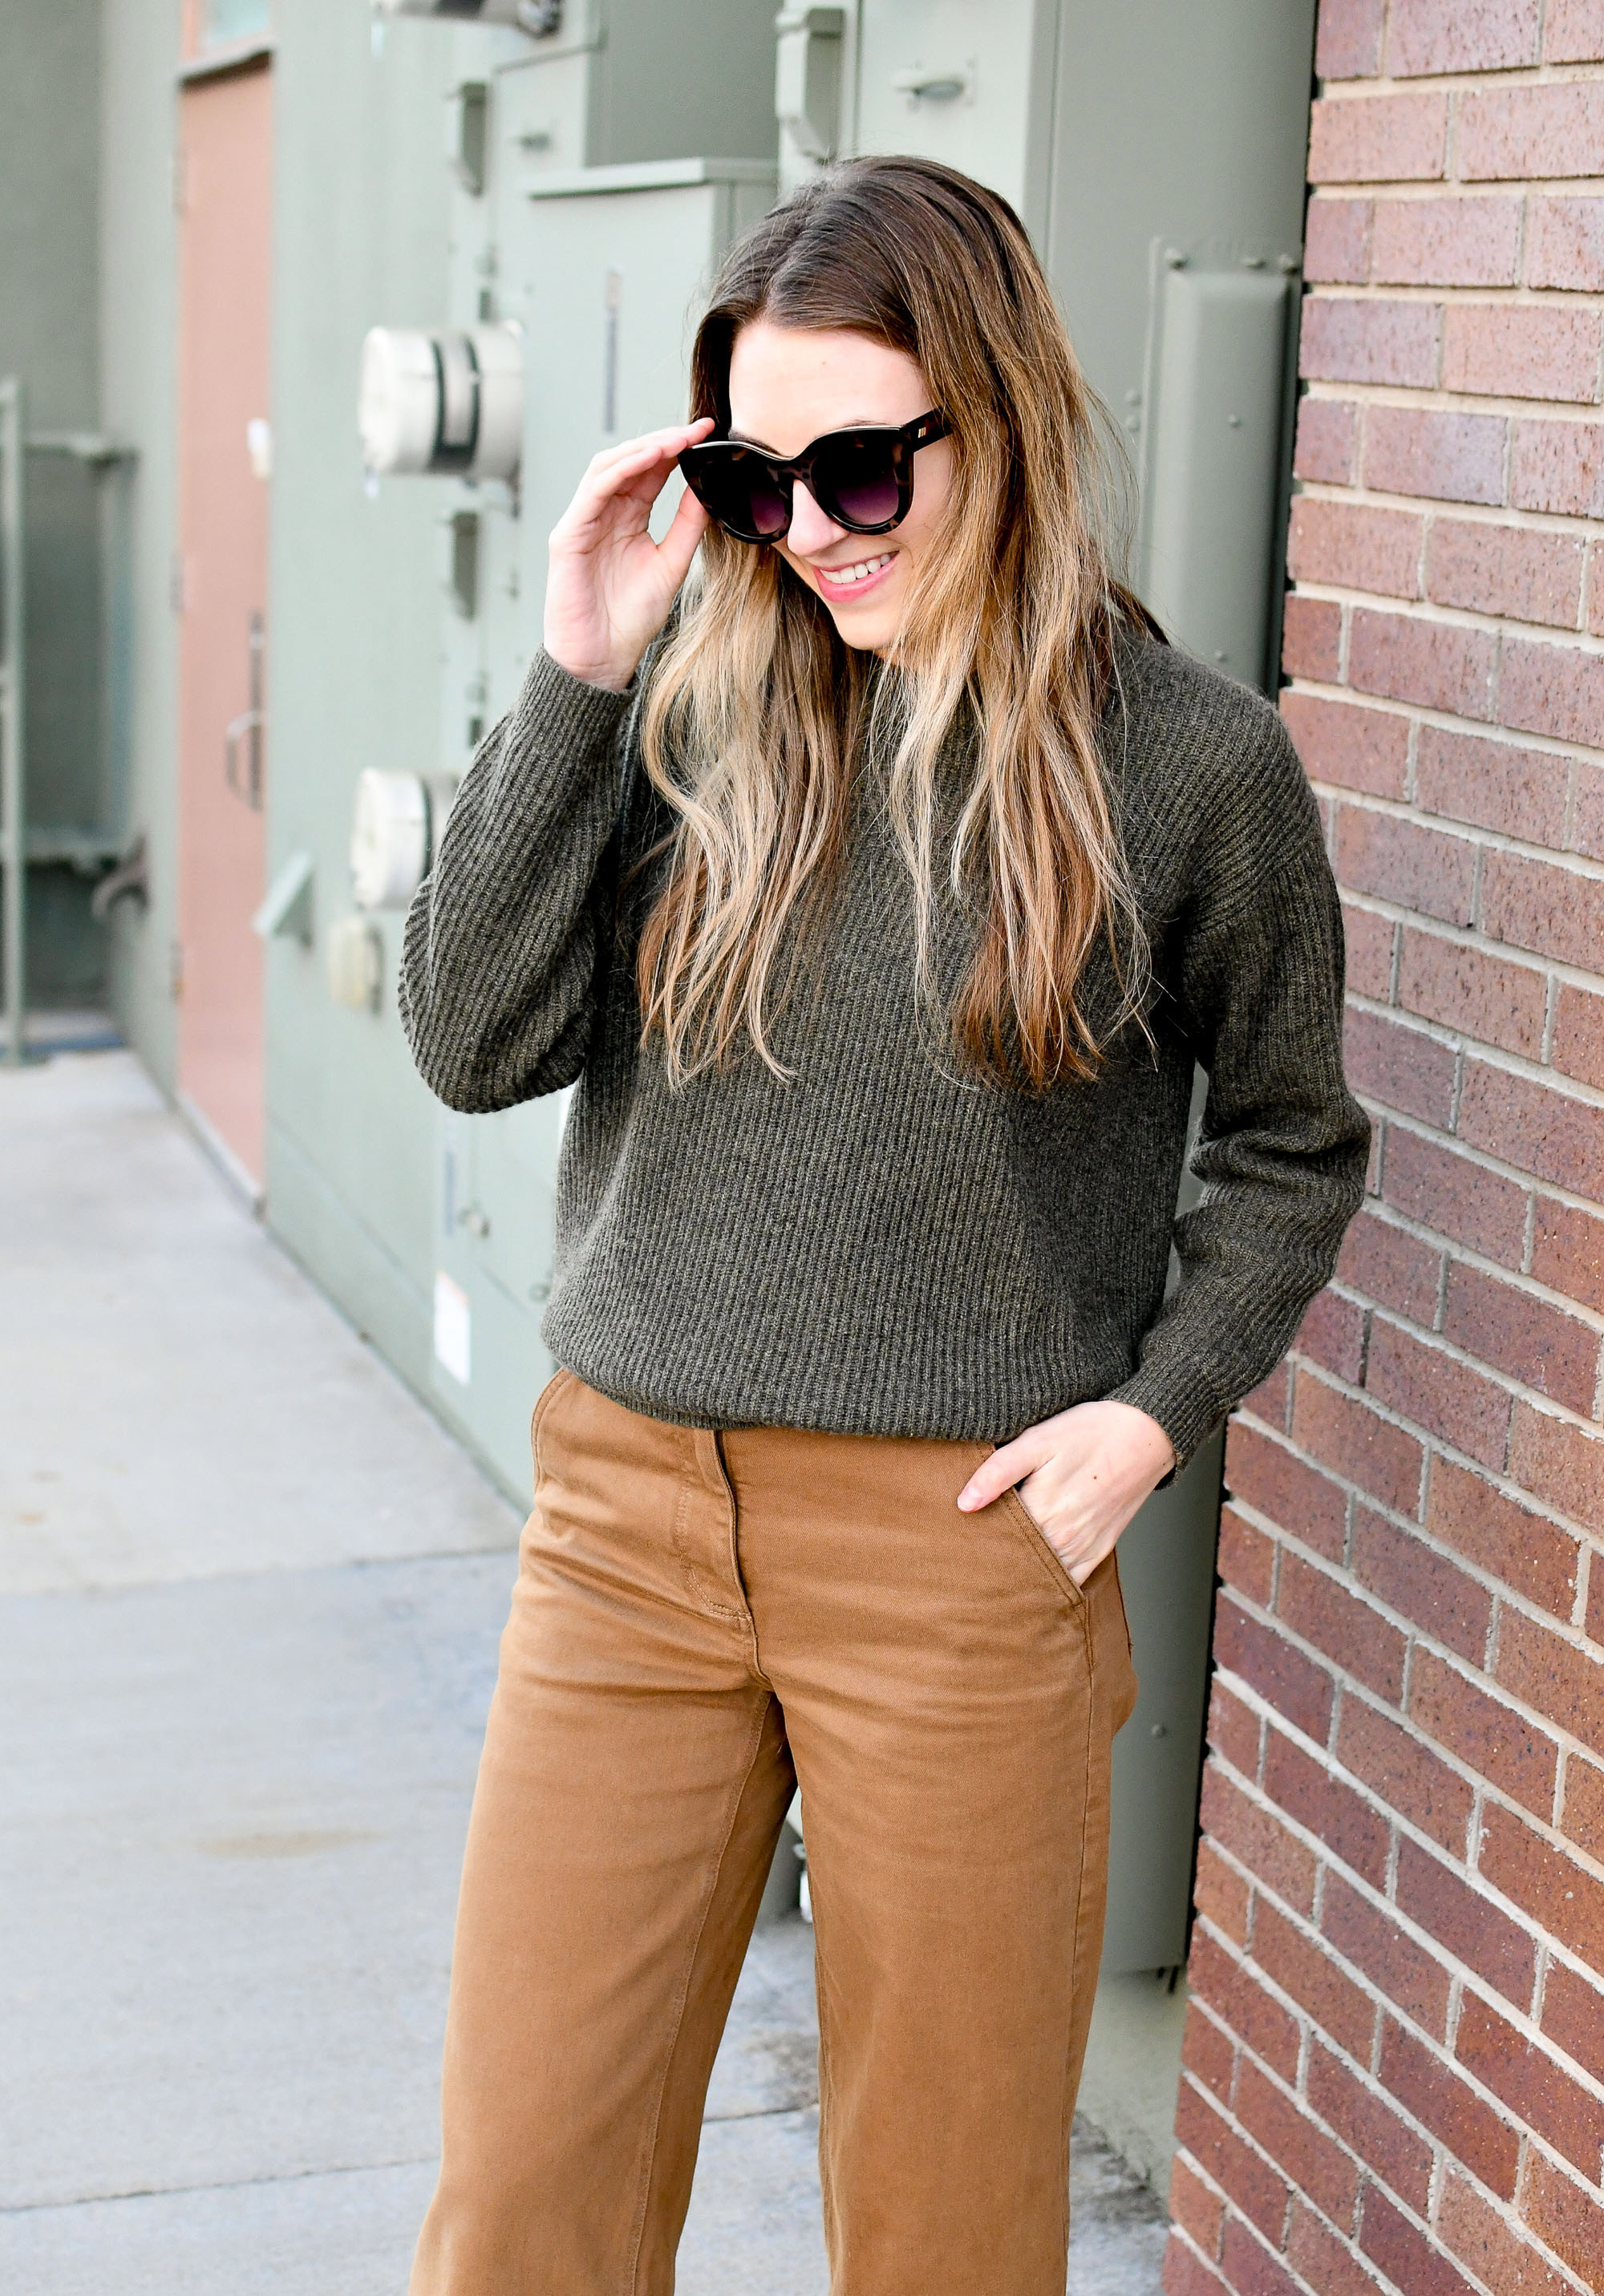 Loden cashmere sweater + ochre wide leg pants winter outfit — Cotton Cashmere Cat Hair